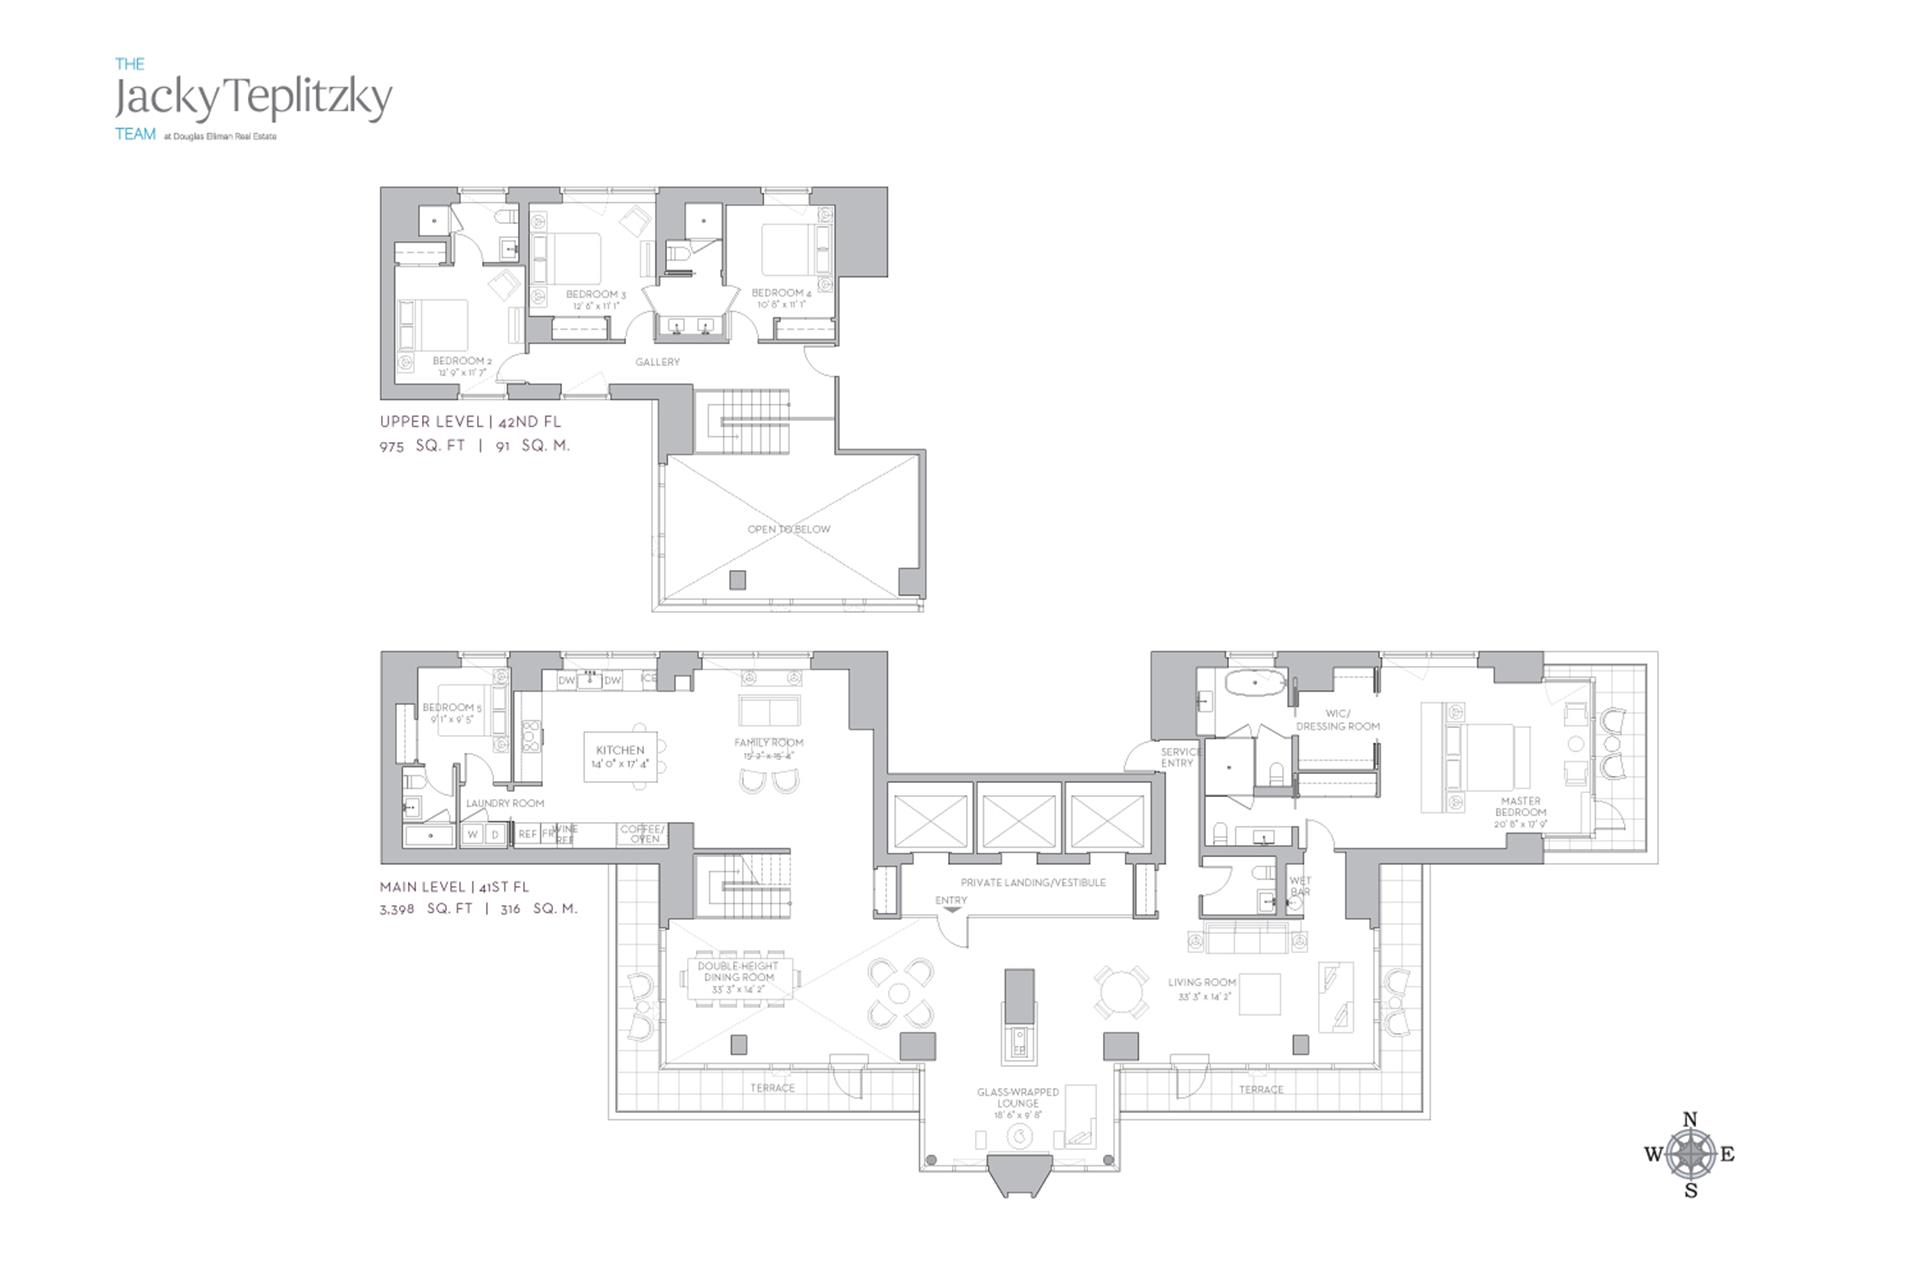 Floor plan of 135 West 52nd St, PH5 - Midtown, New York